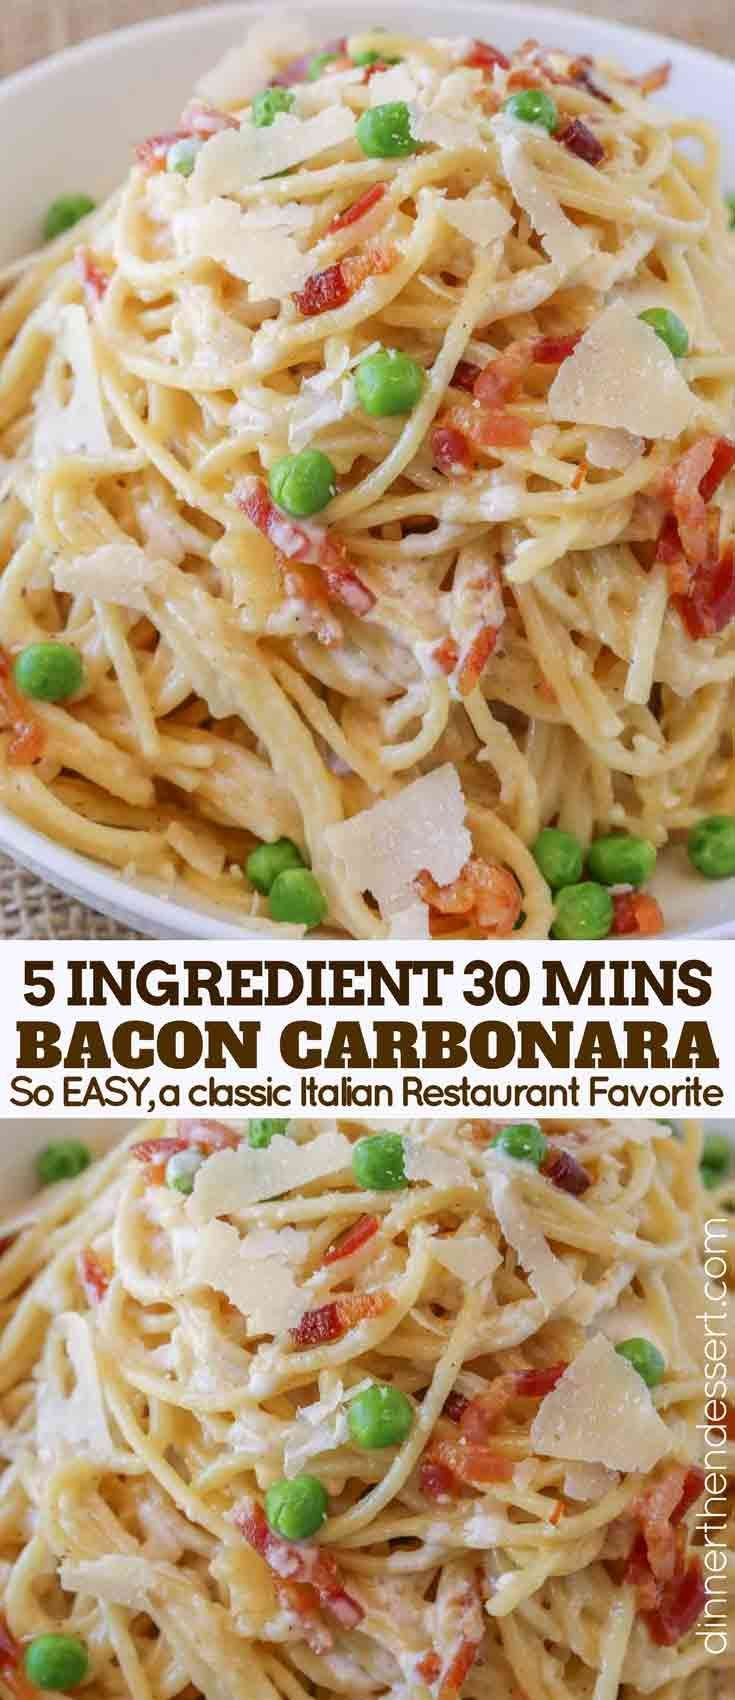 Easy Bacon Carbonara Pasta with just 5 ingredients is as easy as cooking pasta and bacon and it's ready to eat in 30 minutes. A classic recipe made EASY.